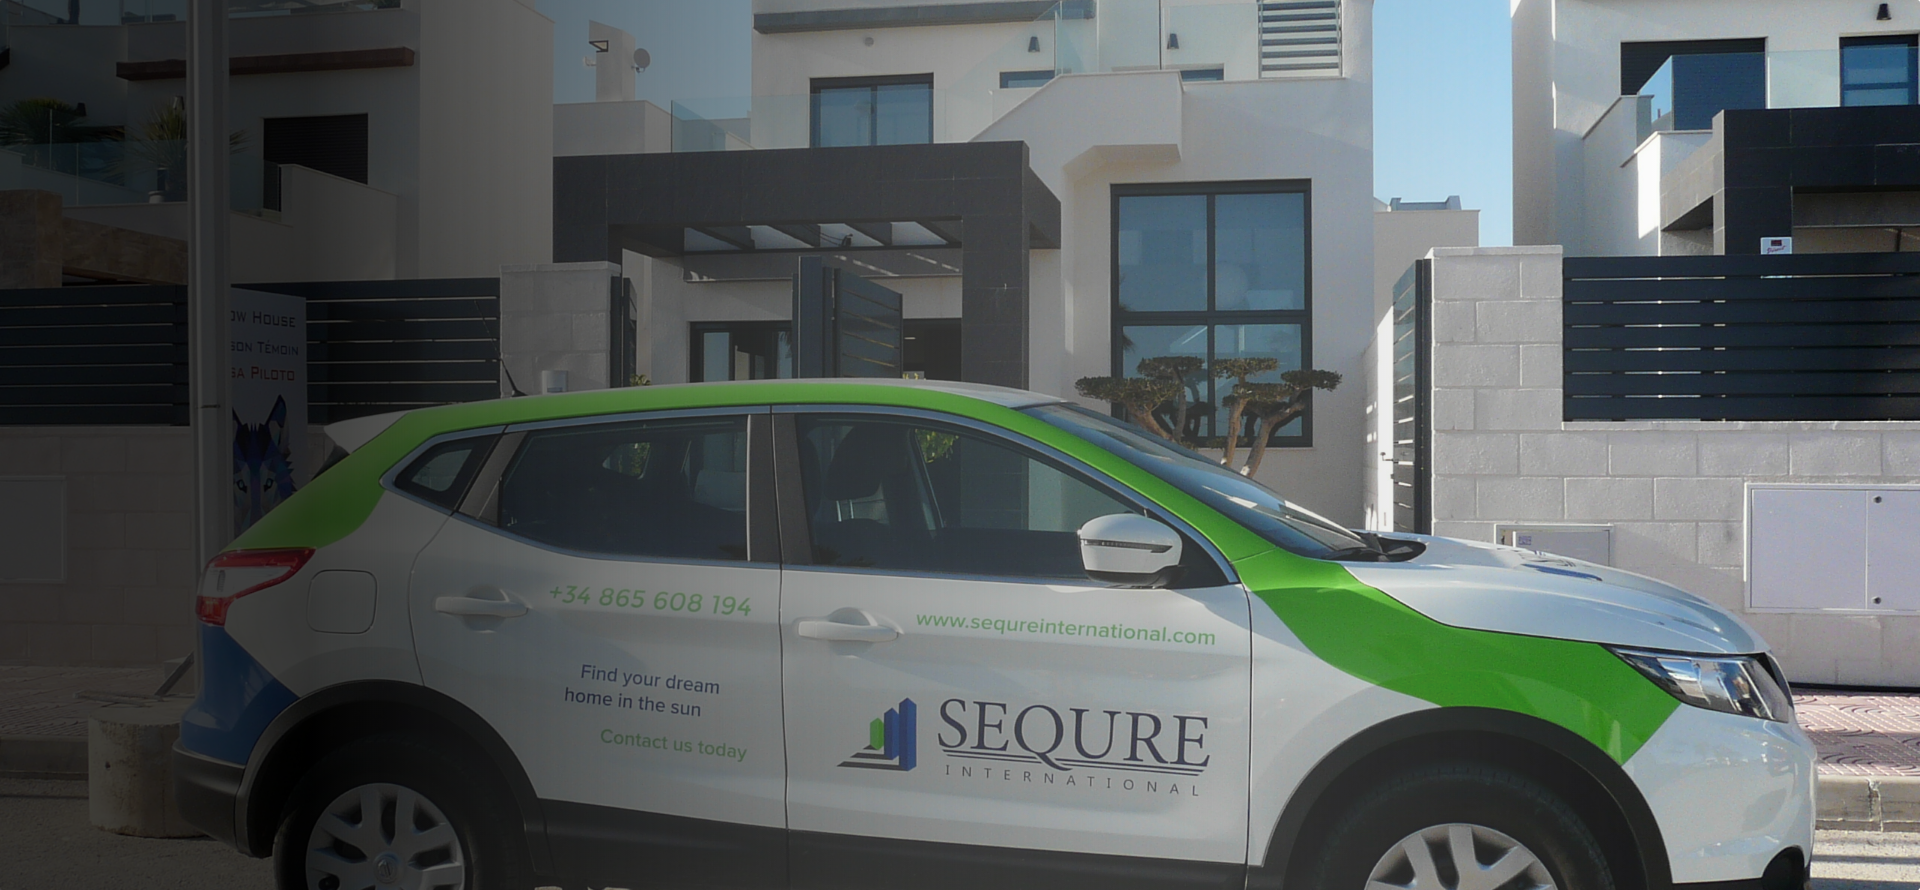 sequre international pool car infront of a 3 storey townhouse style villa in spain